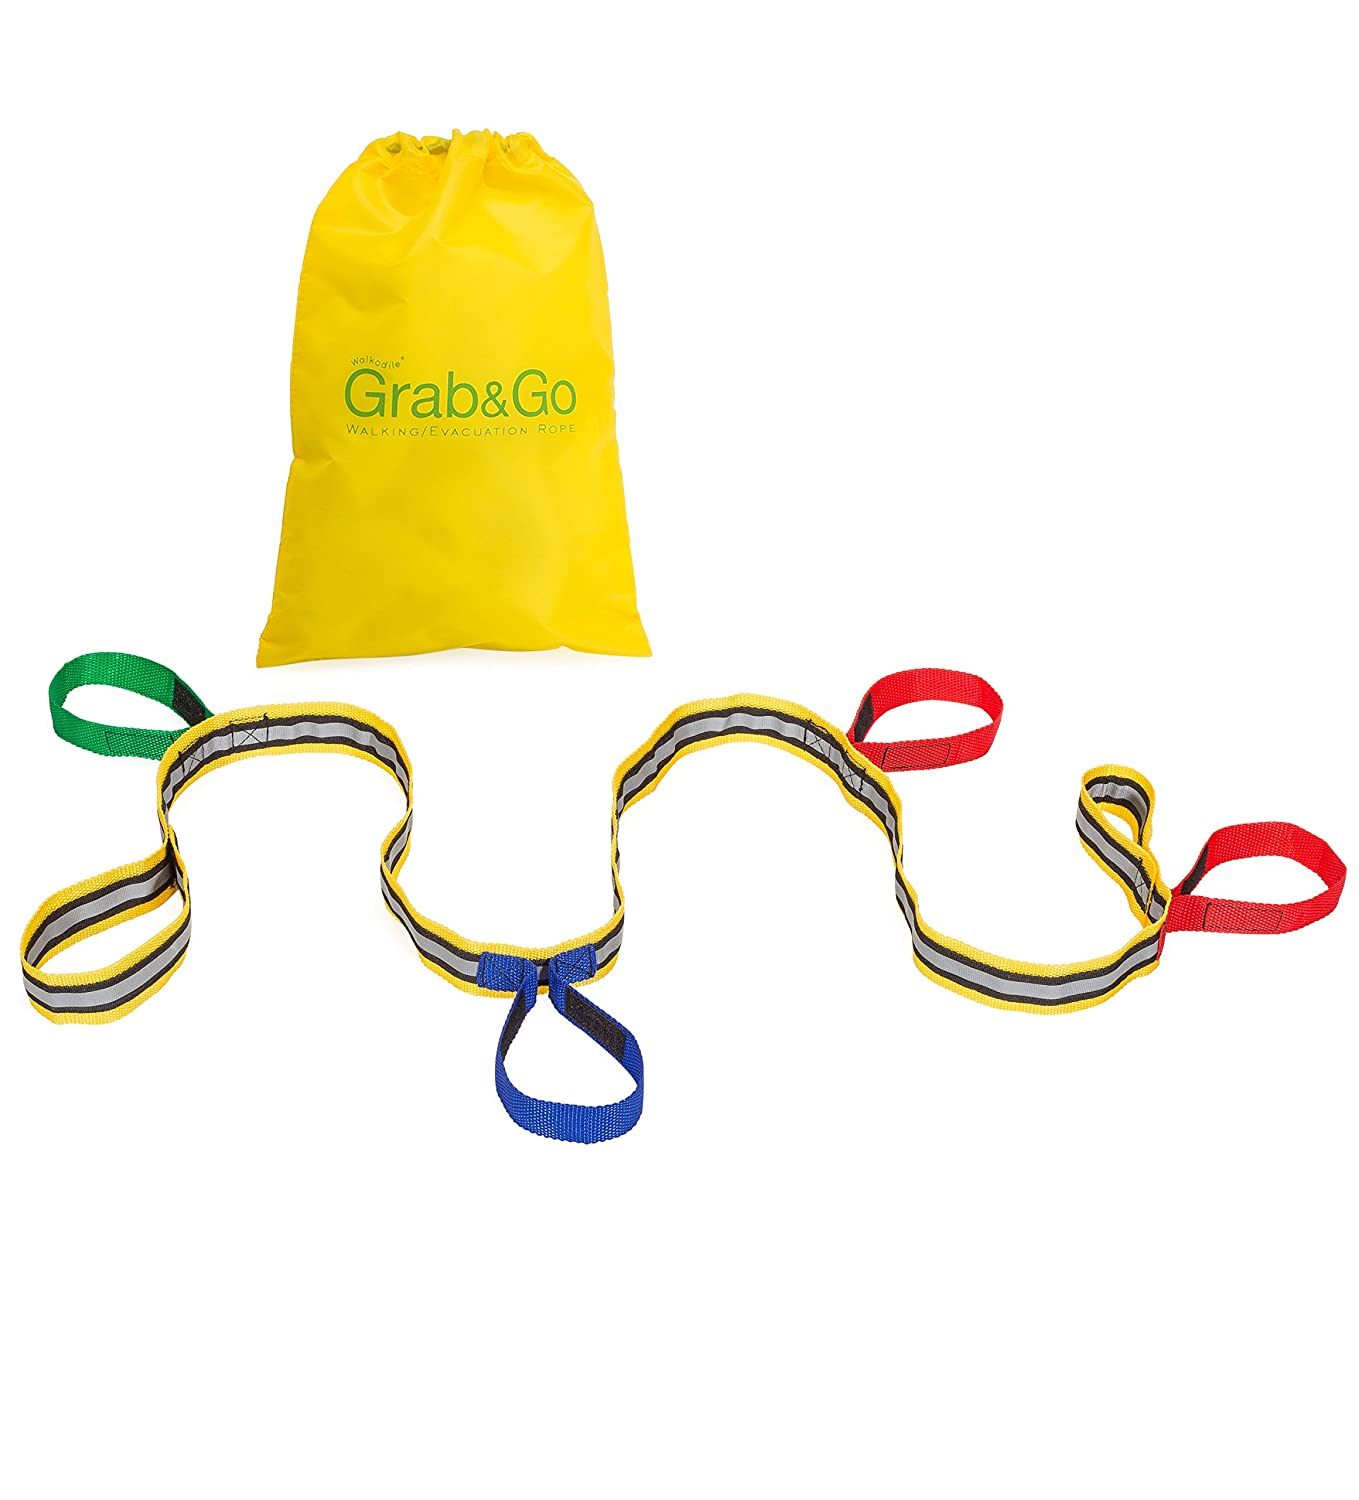 Childrens Walking Rope (4 Child) - Premium Quality, Teacher Designed, Extra Safety Feature on Handles. Hi Viz Detail for Best Visibility. Includes Free Learning Games for Walks Guide